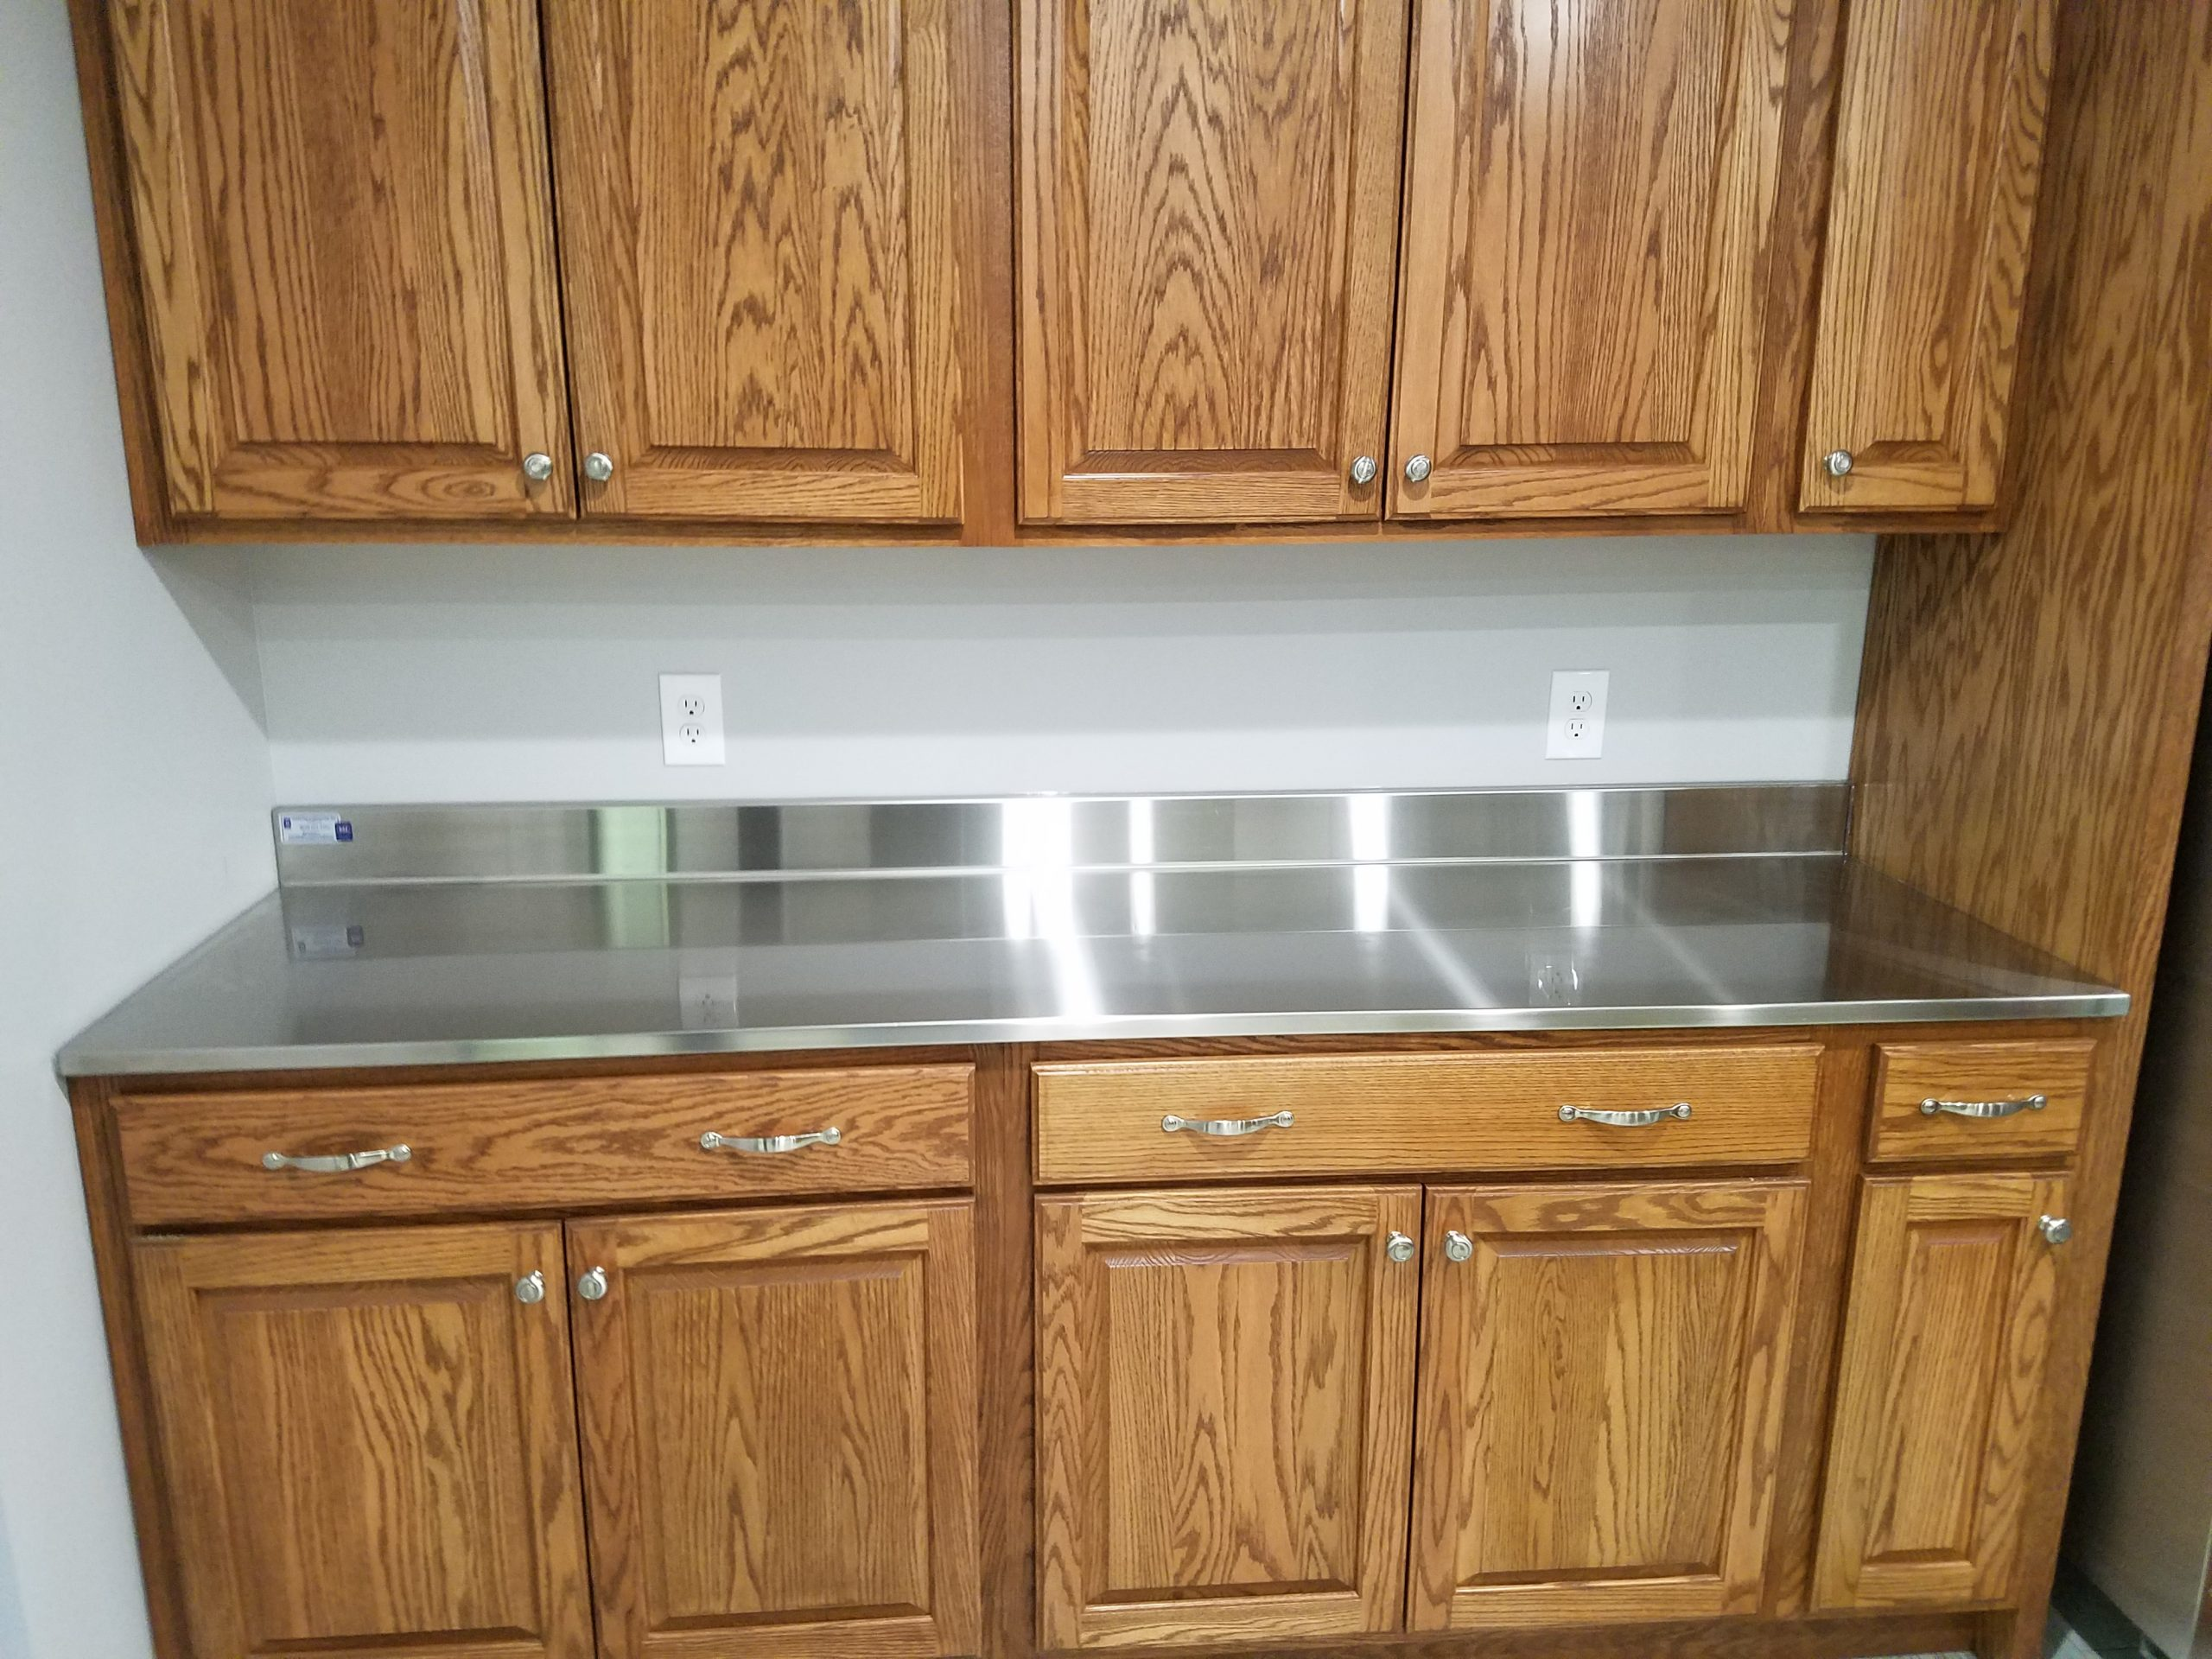 Lodge custom stainless steel counter top with rear splash